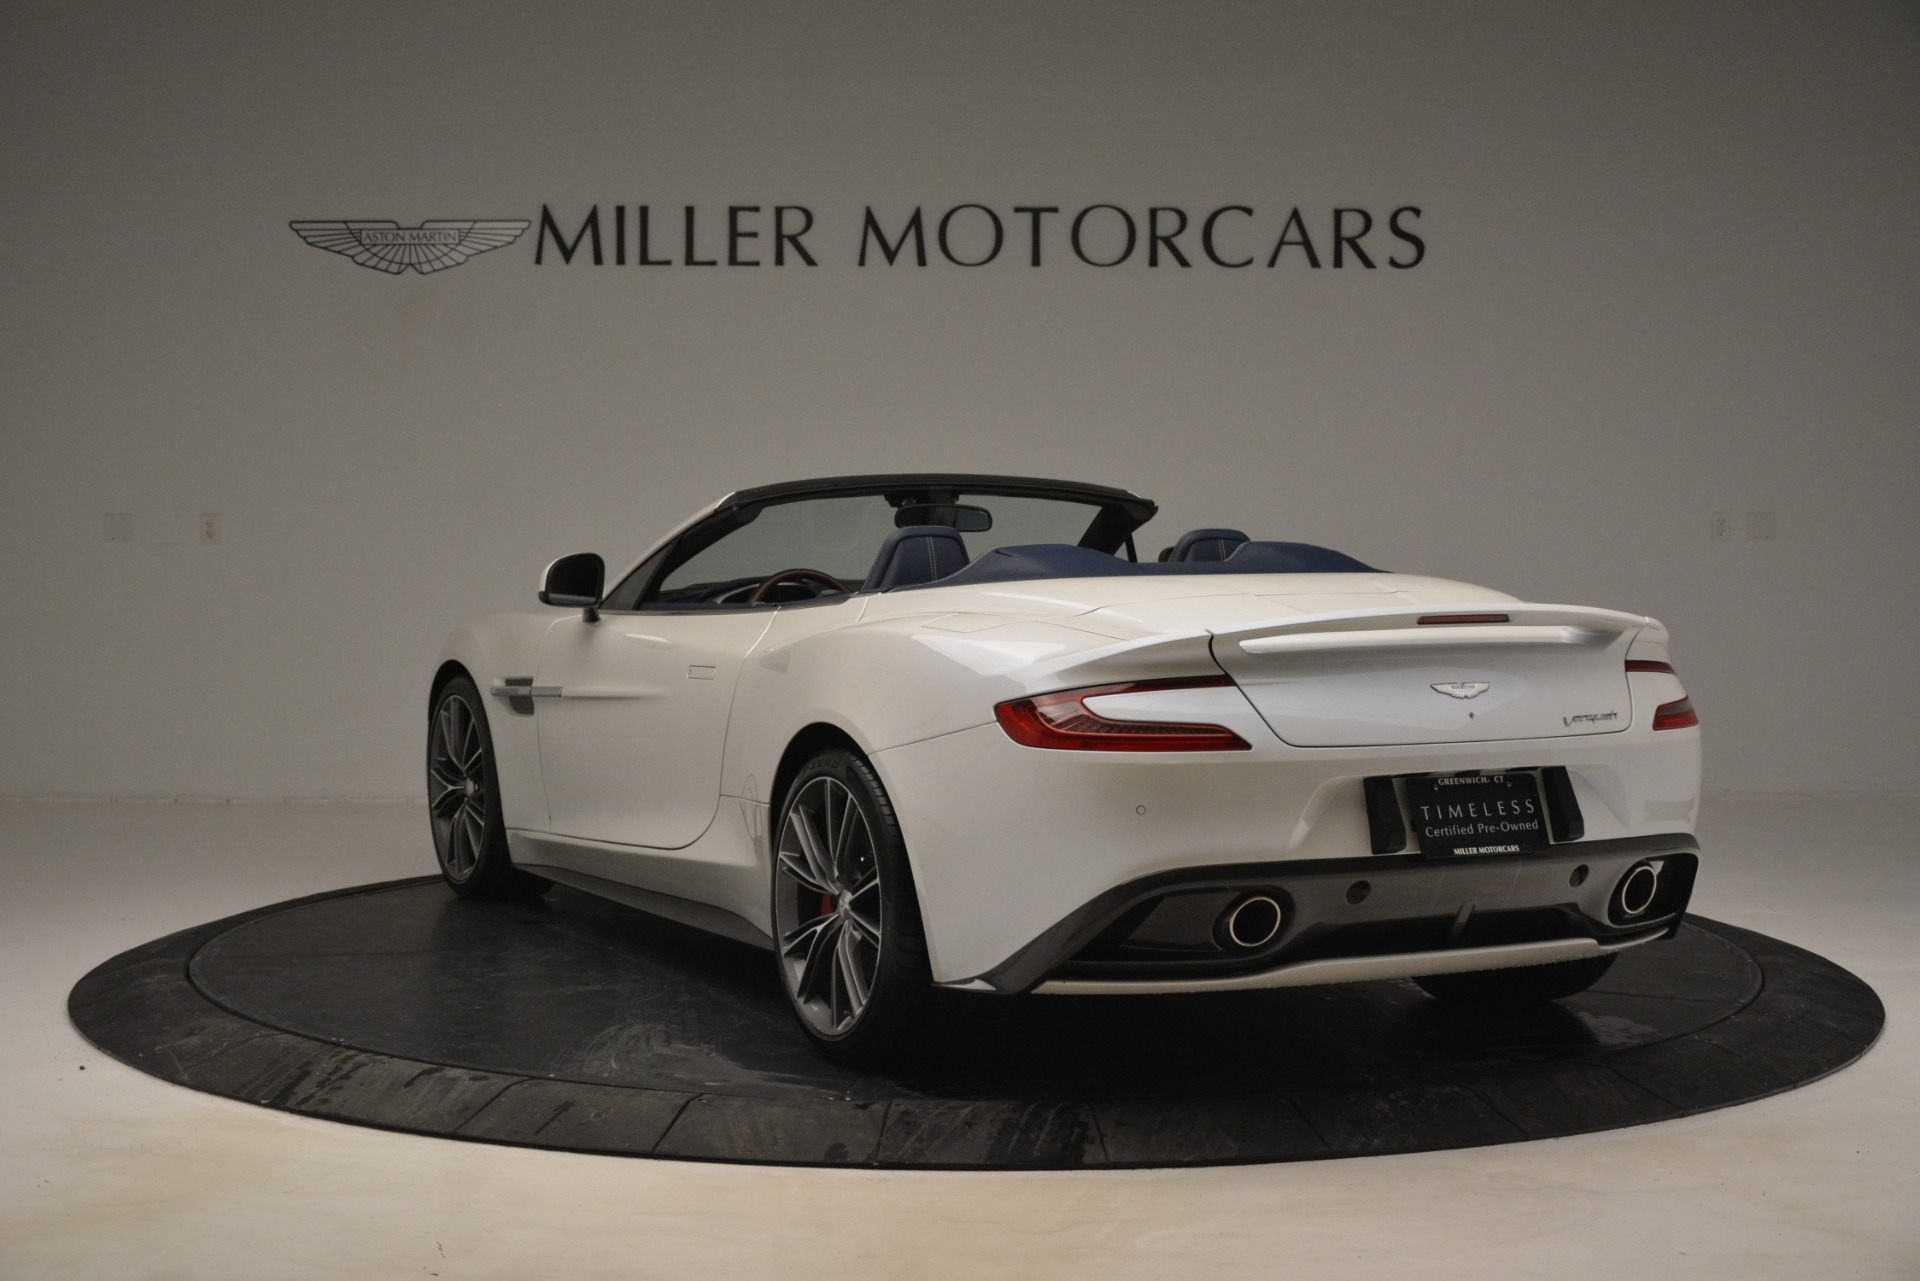 Used 2015 Aston Martin Vanquish Convertible For Sale 167900 In Greenwich, CT